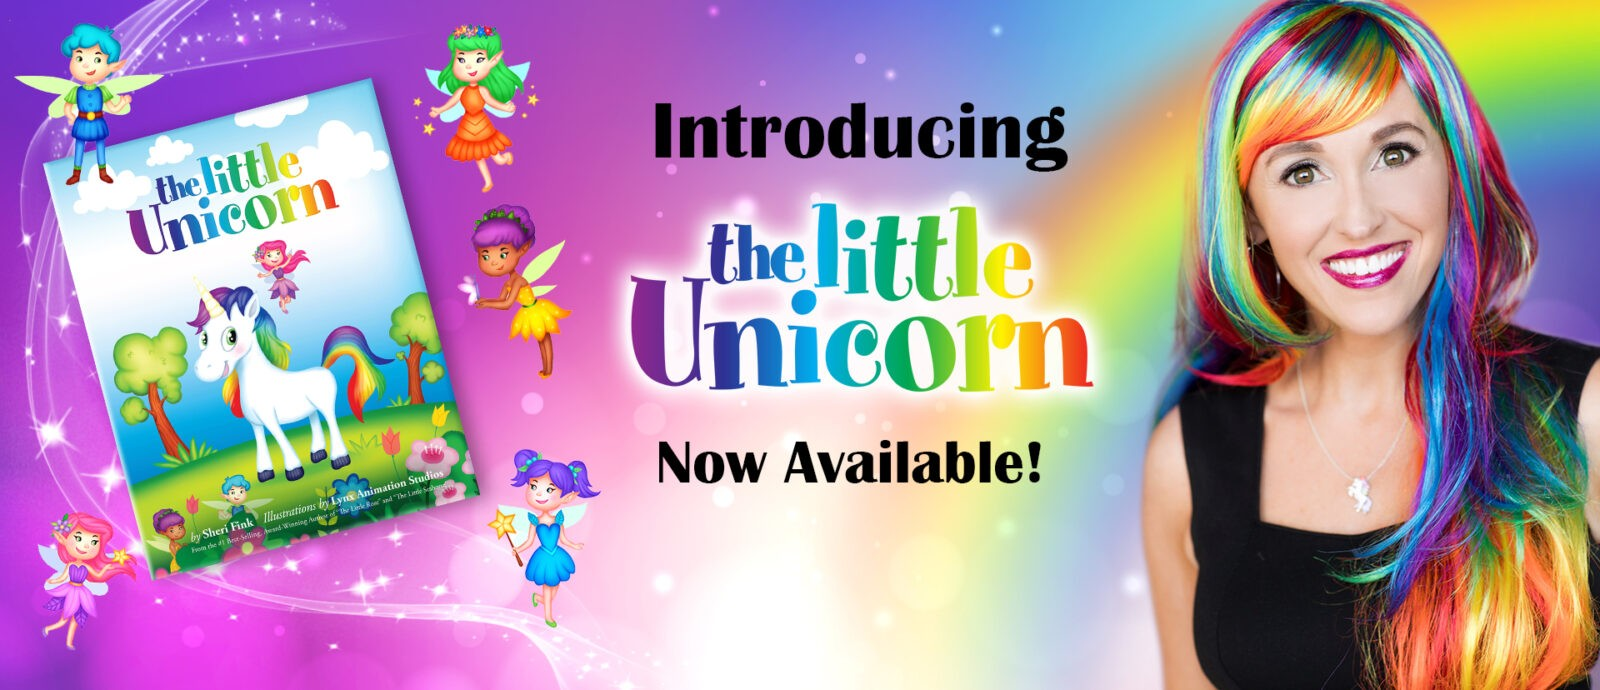 The Little Unicorn book by Sheri Fink is now available